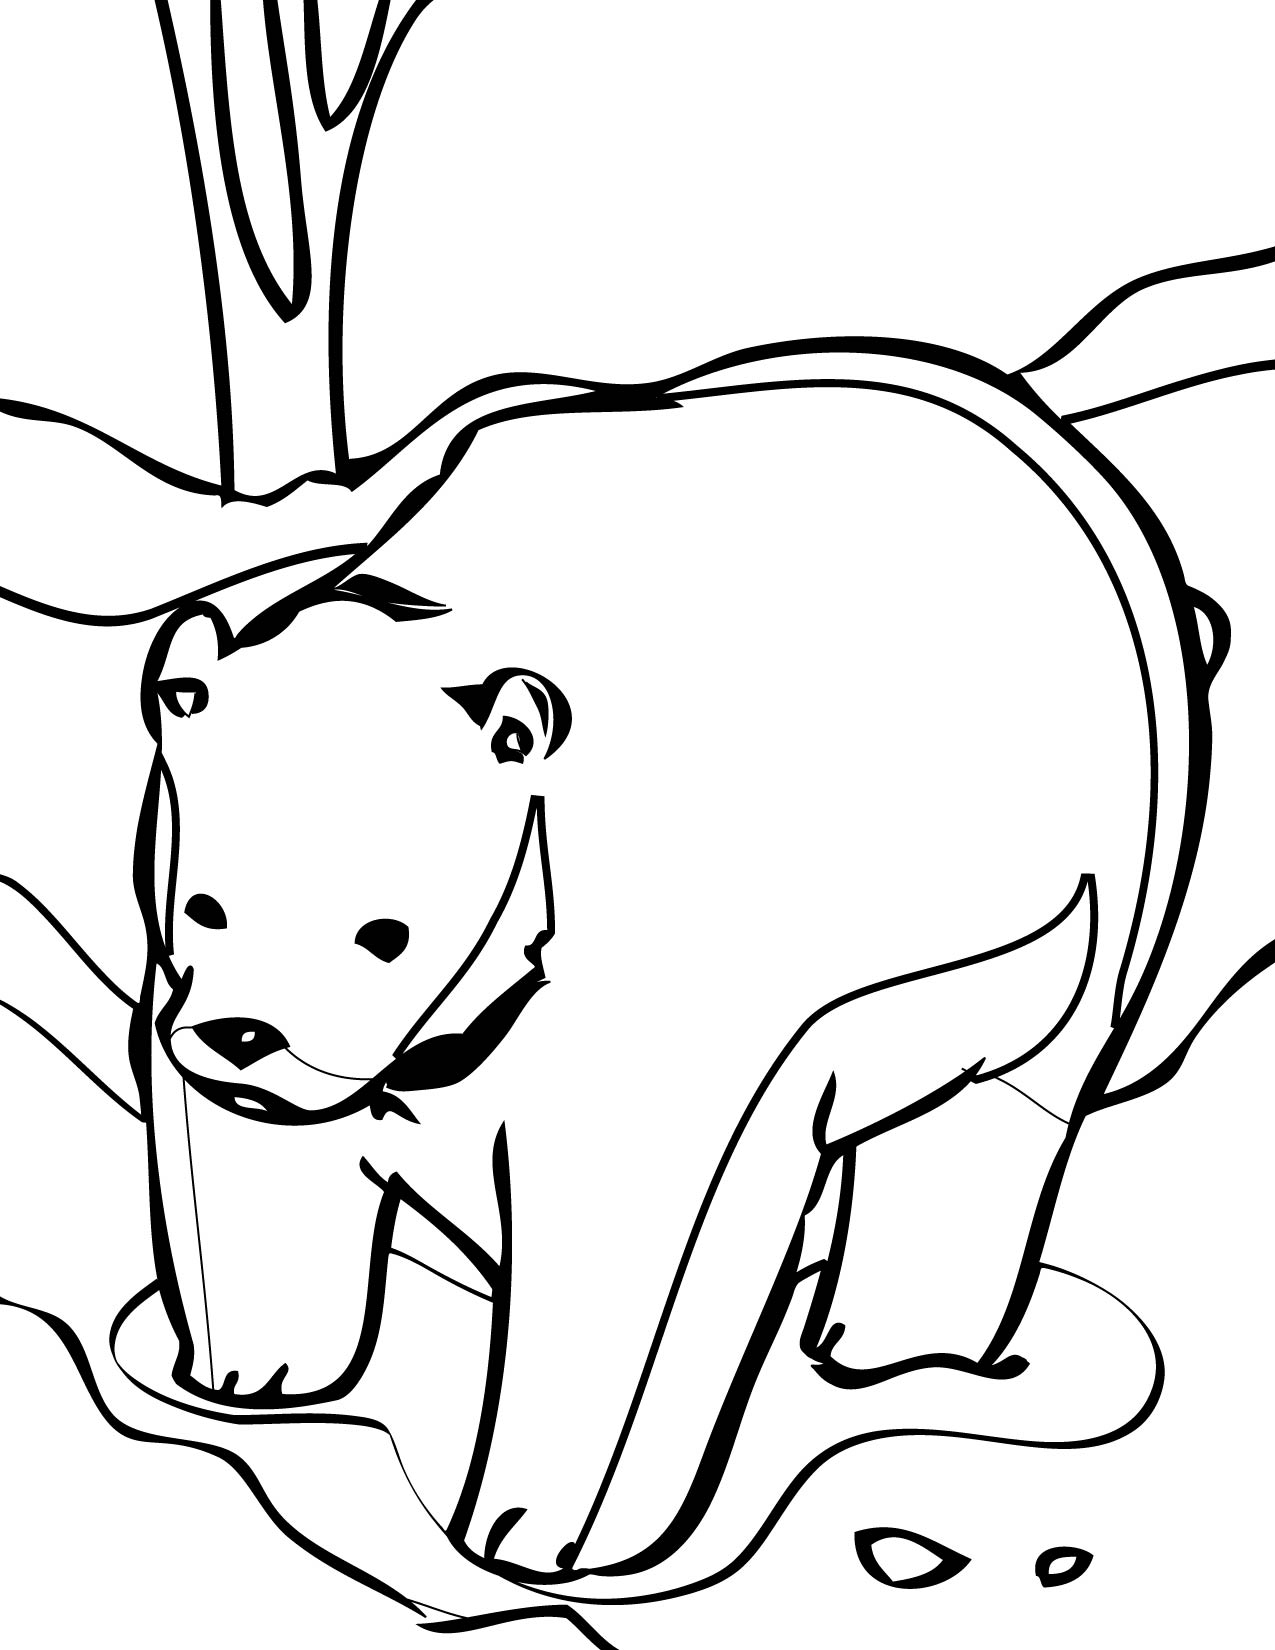 coloring pages of bears to print printable teddy bear coloring pages for kids cool2bkids coloring of pages bears to print